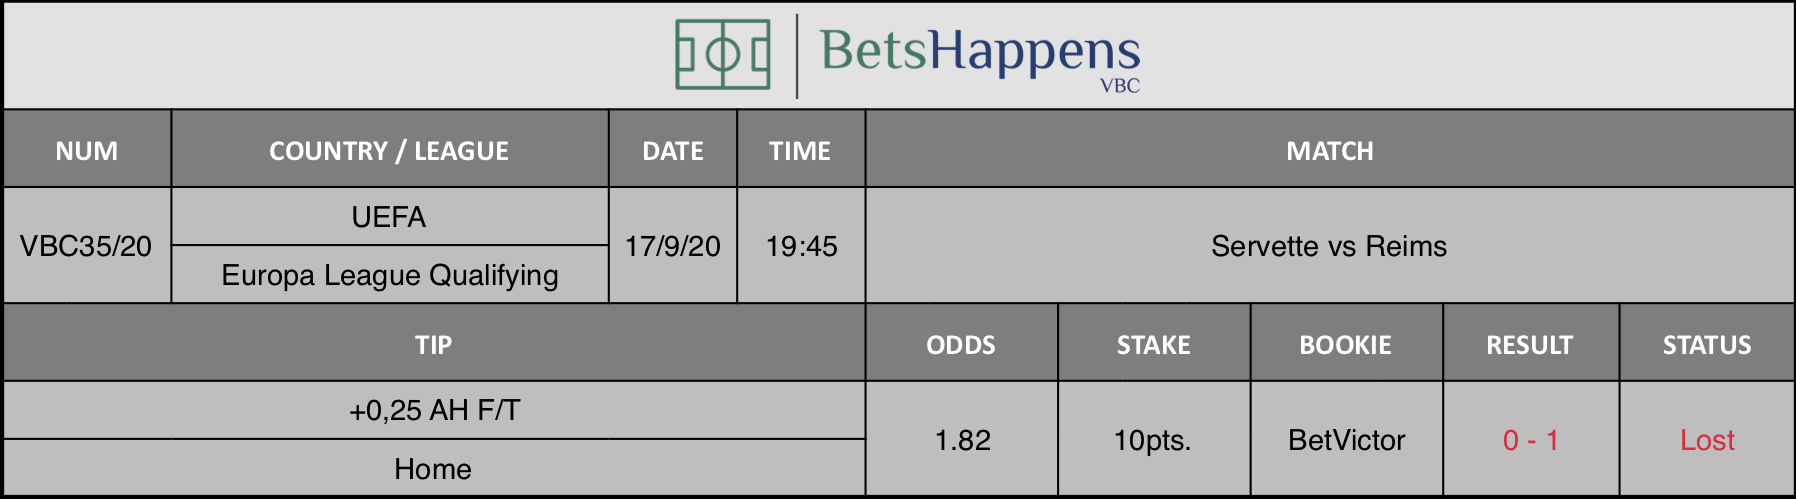 Results of our advice for the Servette vs Reims match in which +0.25 AH F / T Home is recommended.